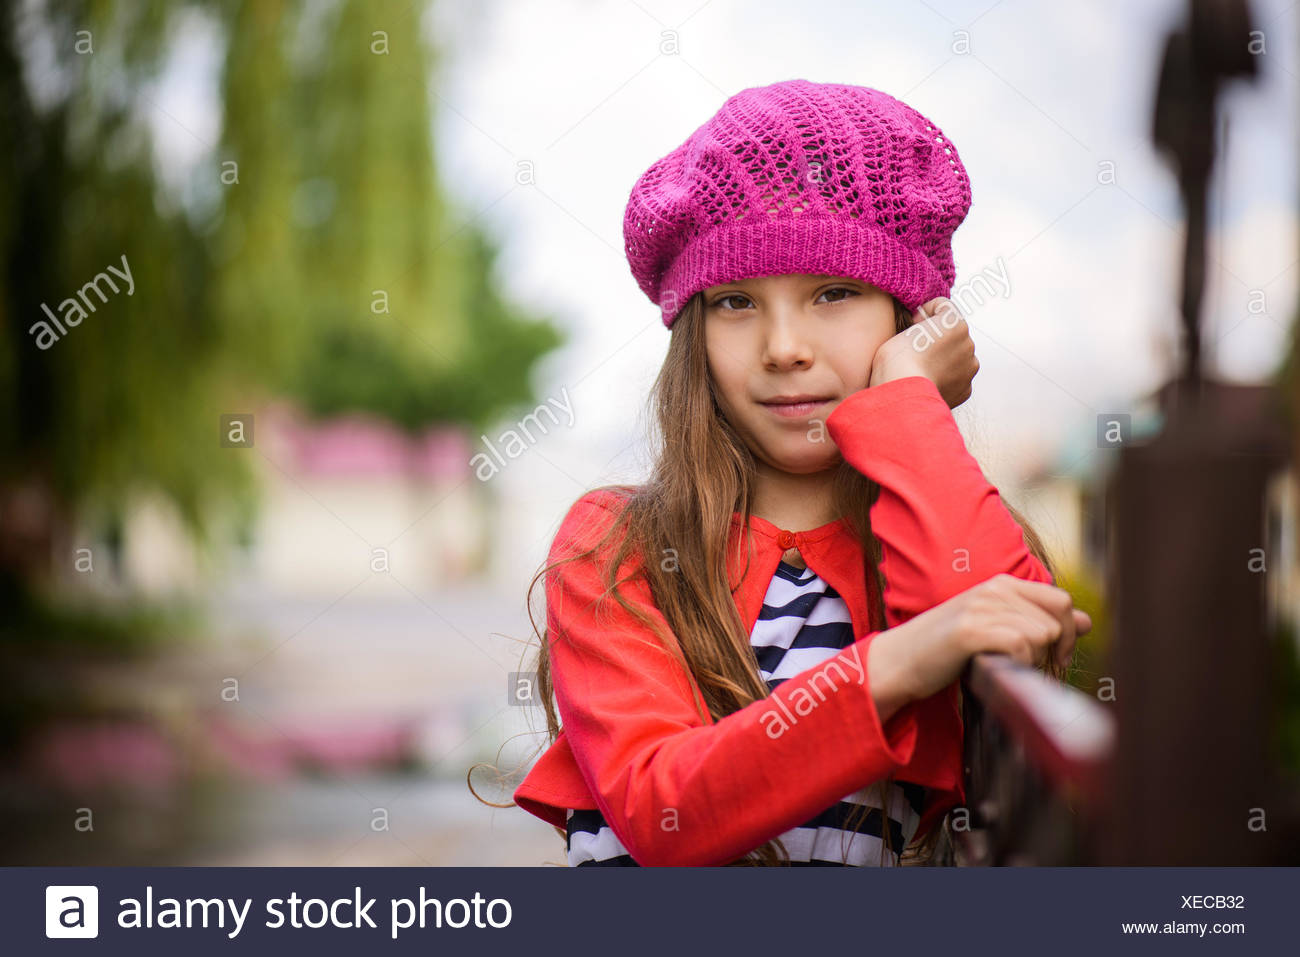 little girl in red beret Stock Photo  284243206 - Alamy a8d6c936b84